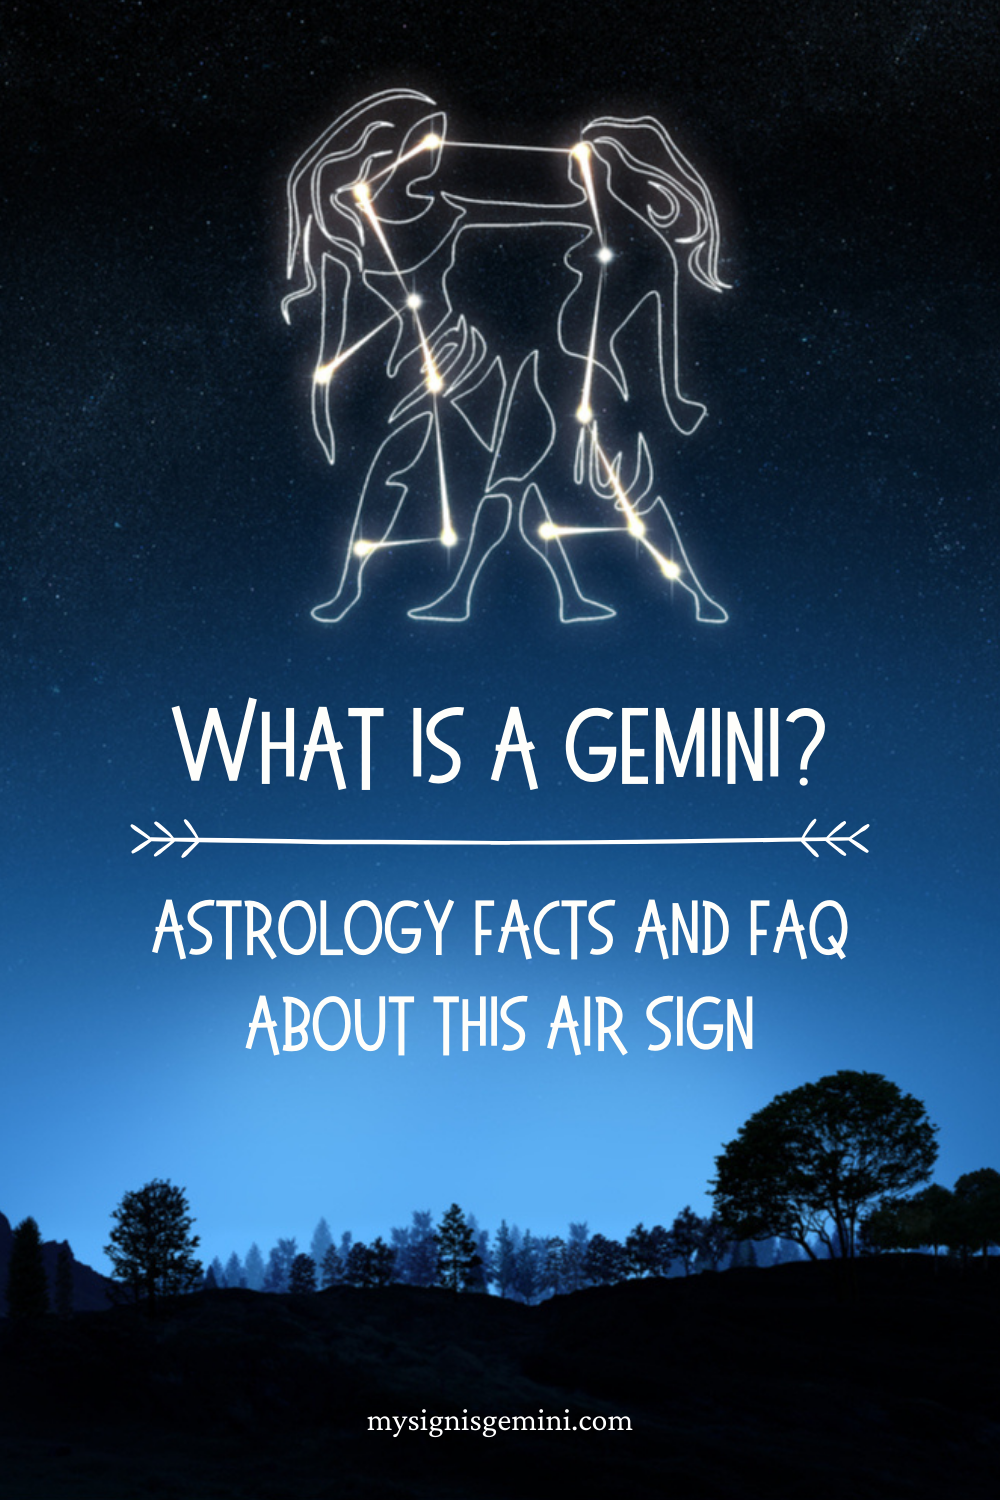 What Is A Gemini_ Astrology Facts And FAQ About This Air Sign, Gemini Zodiac Traits #gemini #astrology #zodiac #geminisign